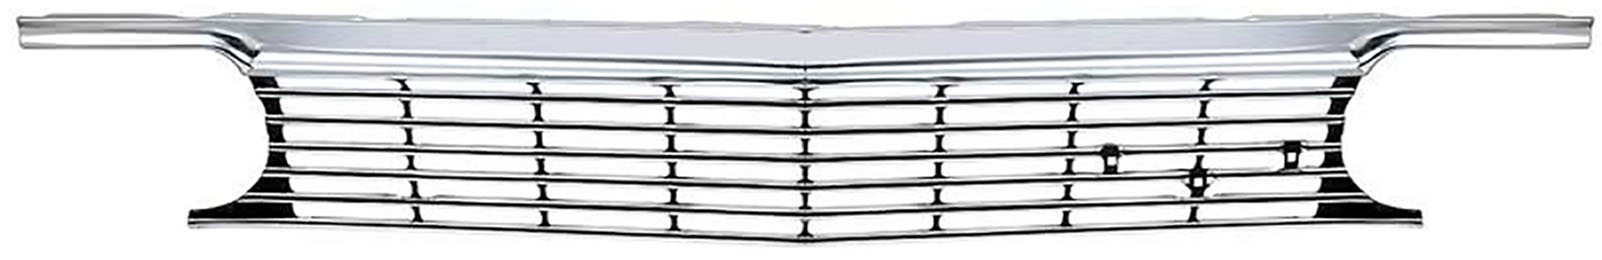 1966 IMPALA GRILLE, UPPER